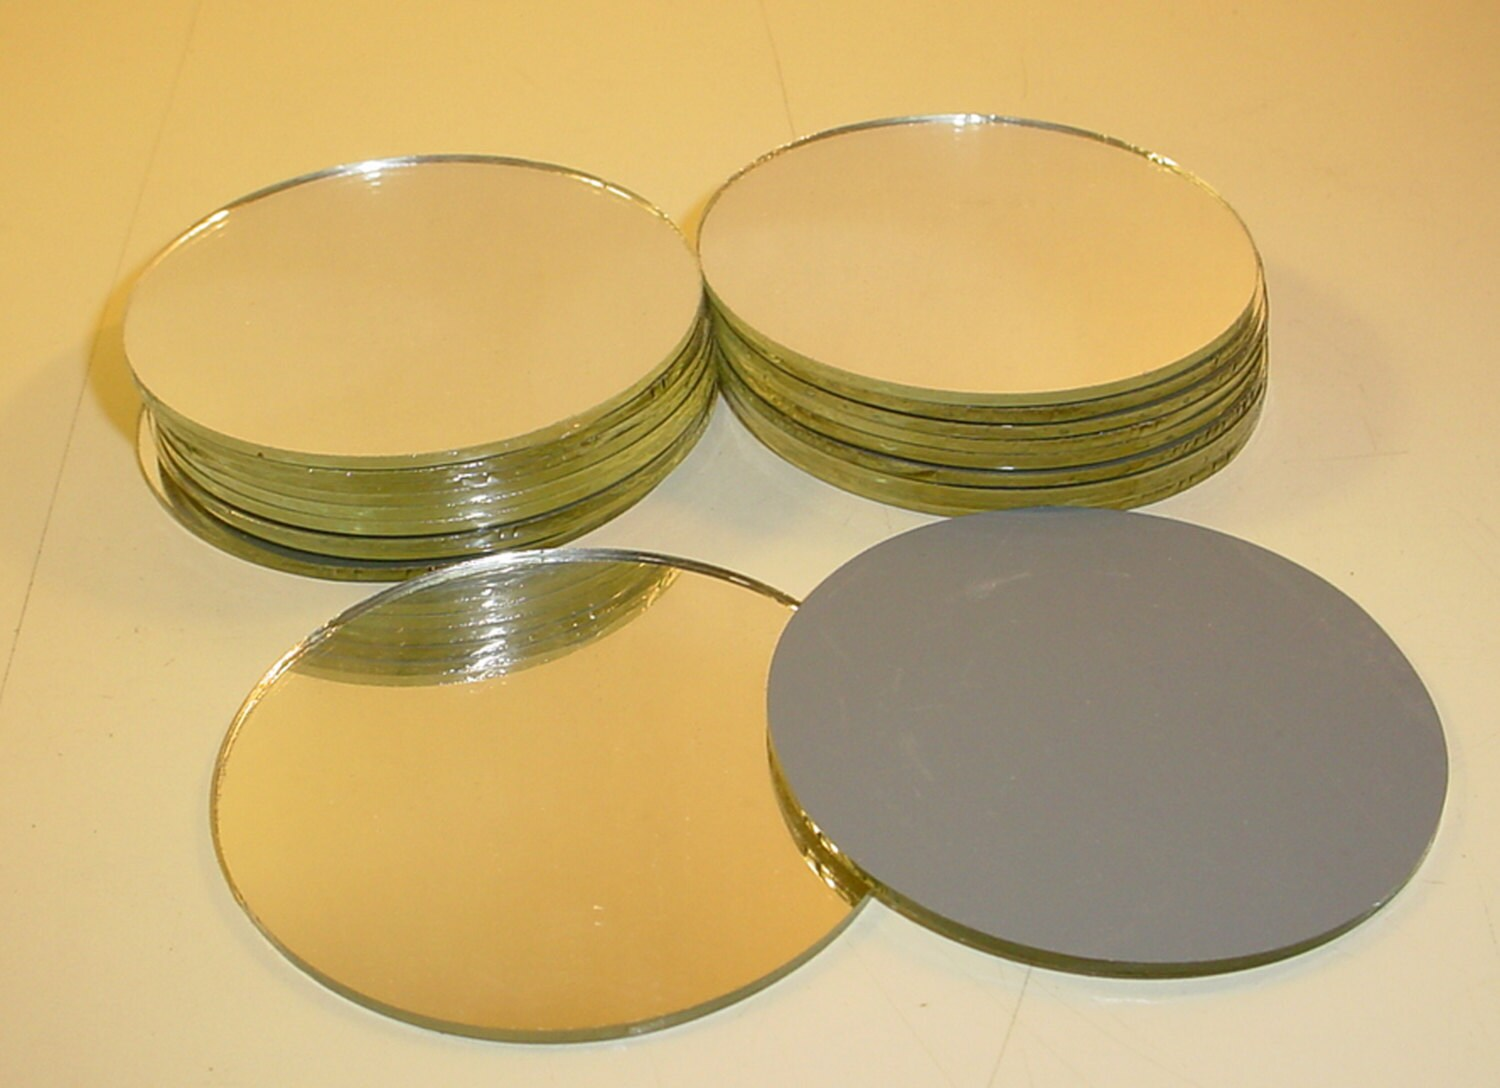 Small round mirrors for crafts - Small Round Craft Mirrors